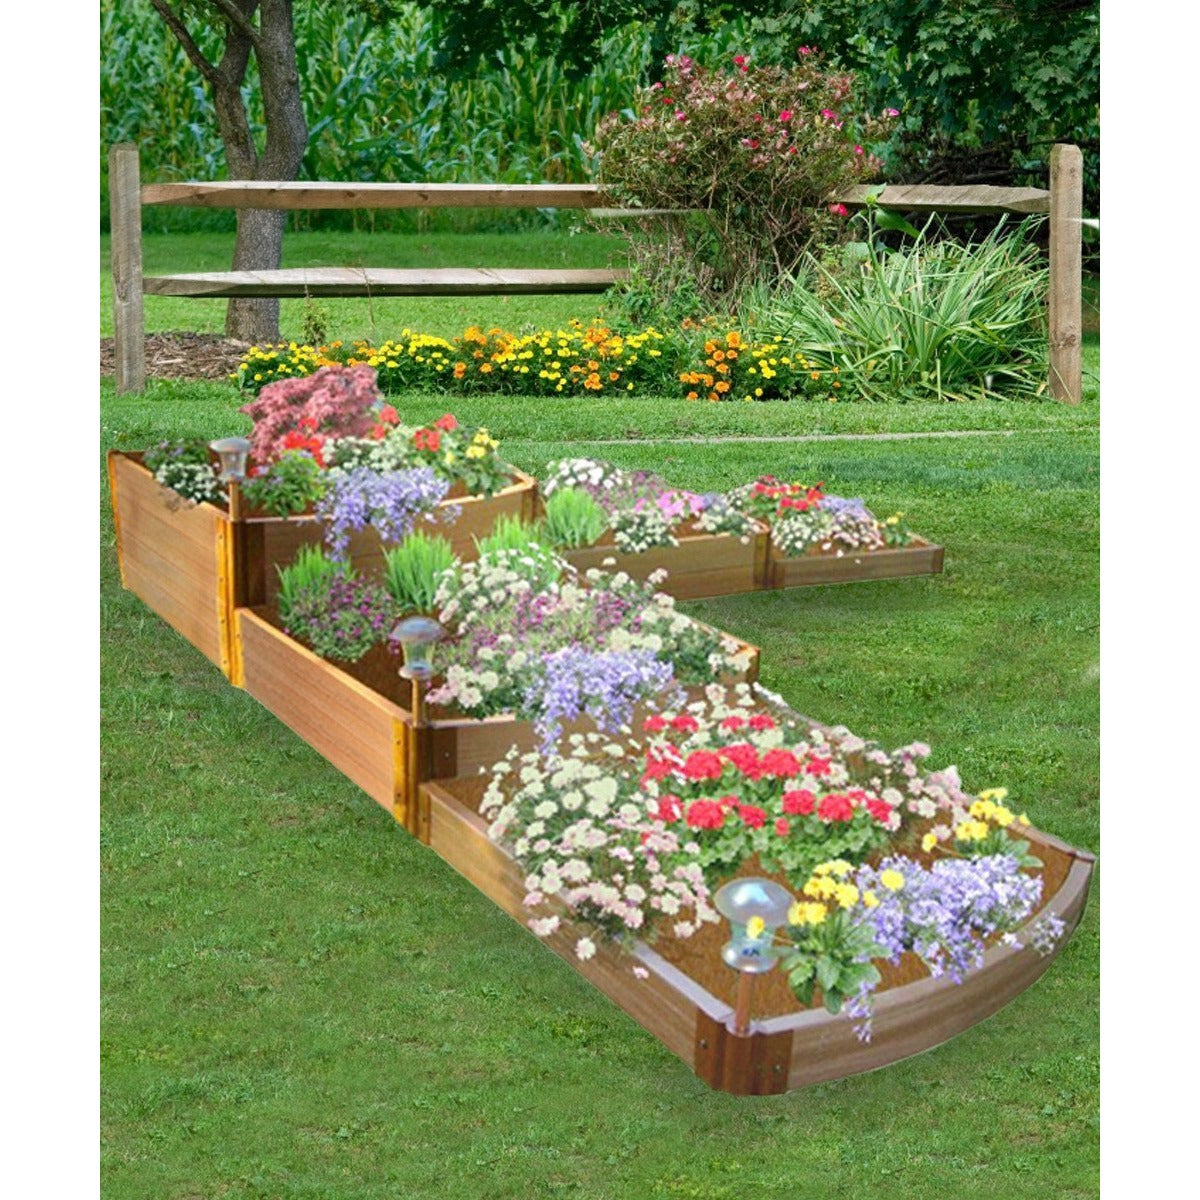 ... Raised Bed   Frame It All Composite 3 Tier Waterfall Shown In Backyard  Planted With Flowers ...